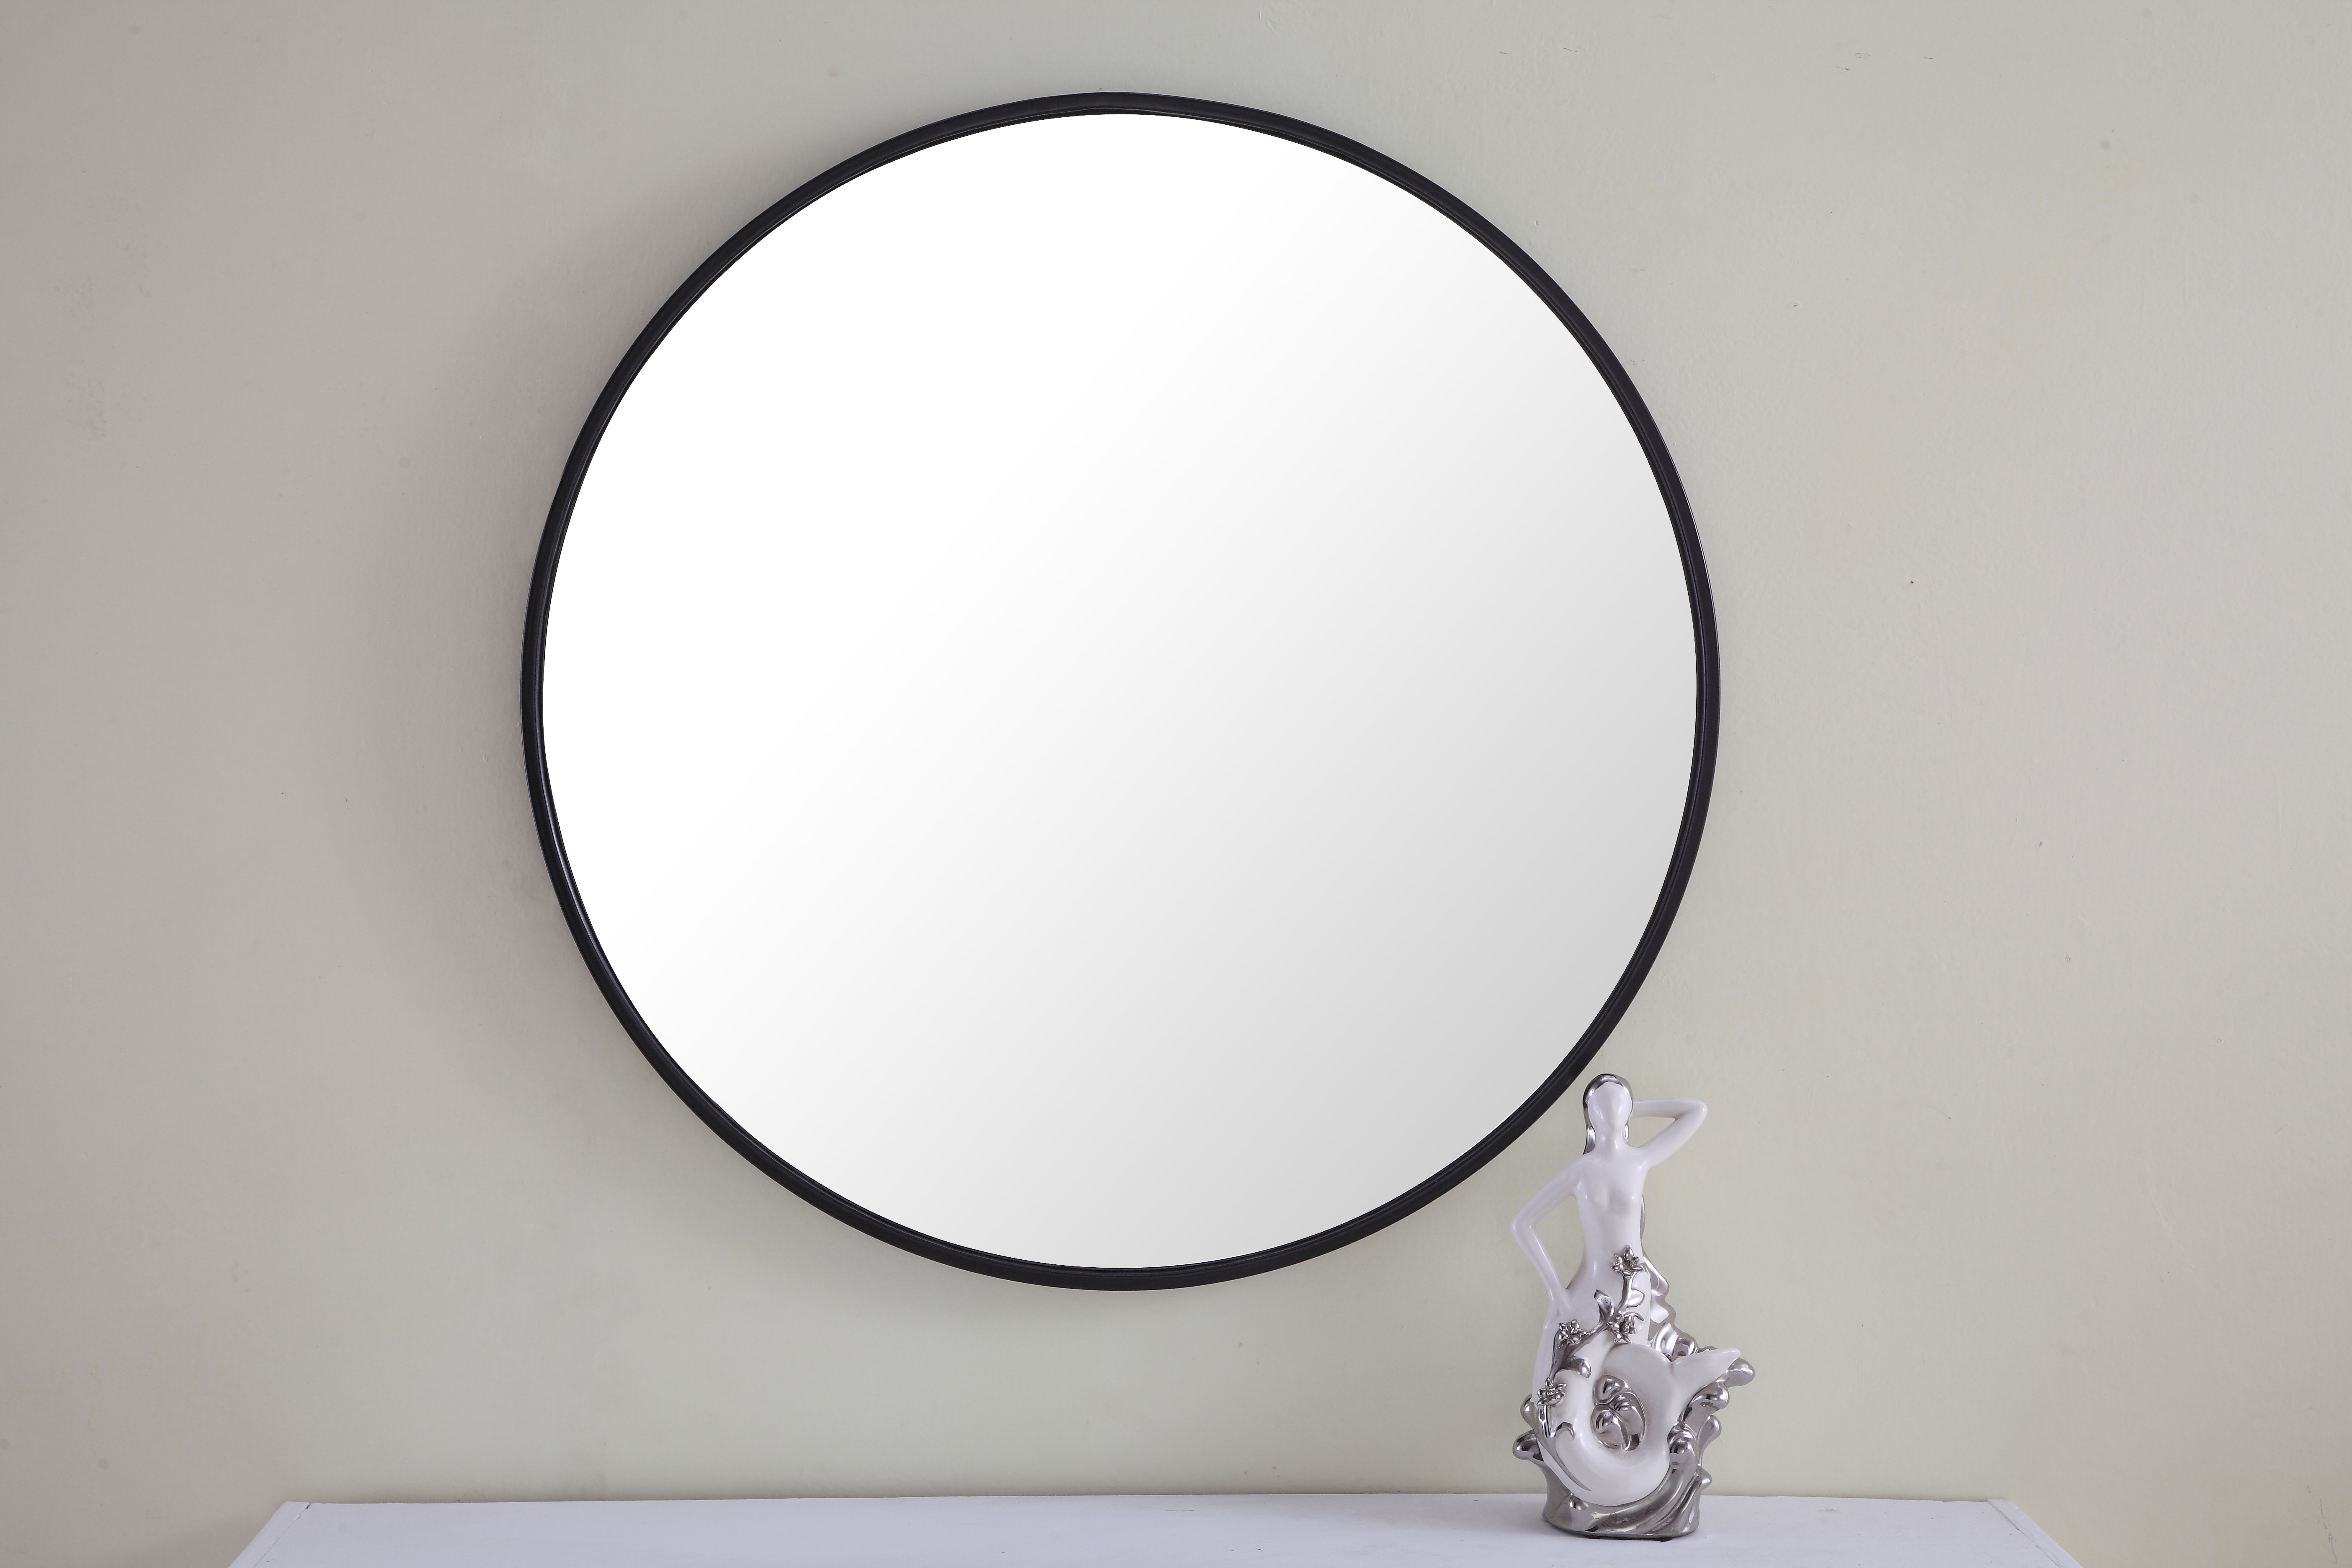 Modern & Contemporary 42 Inch Round Mirror | Allmodern Pertaining To Round Eclectic Accent Mirrors (View 15 of 30)